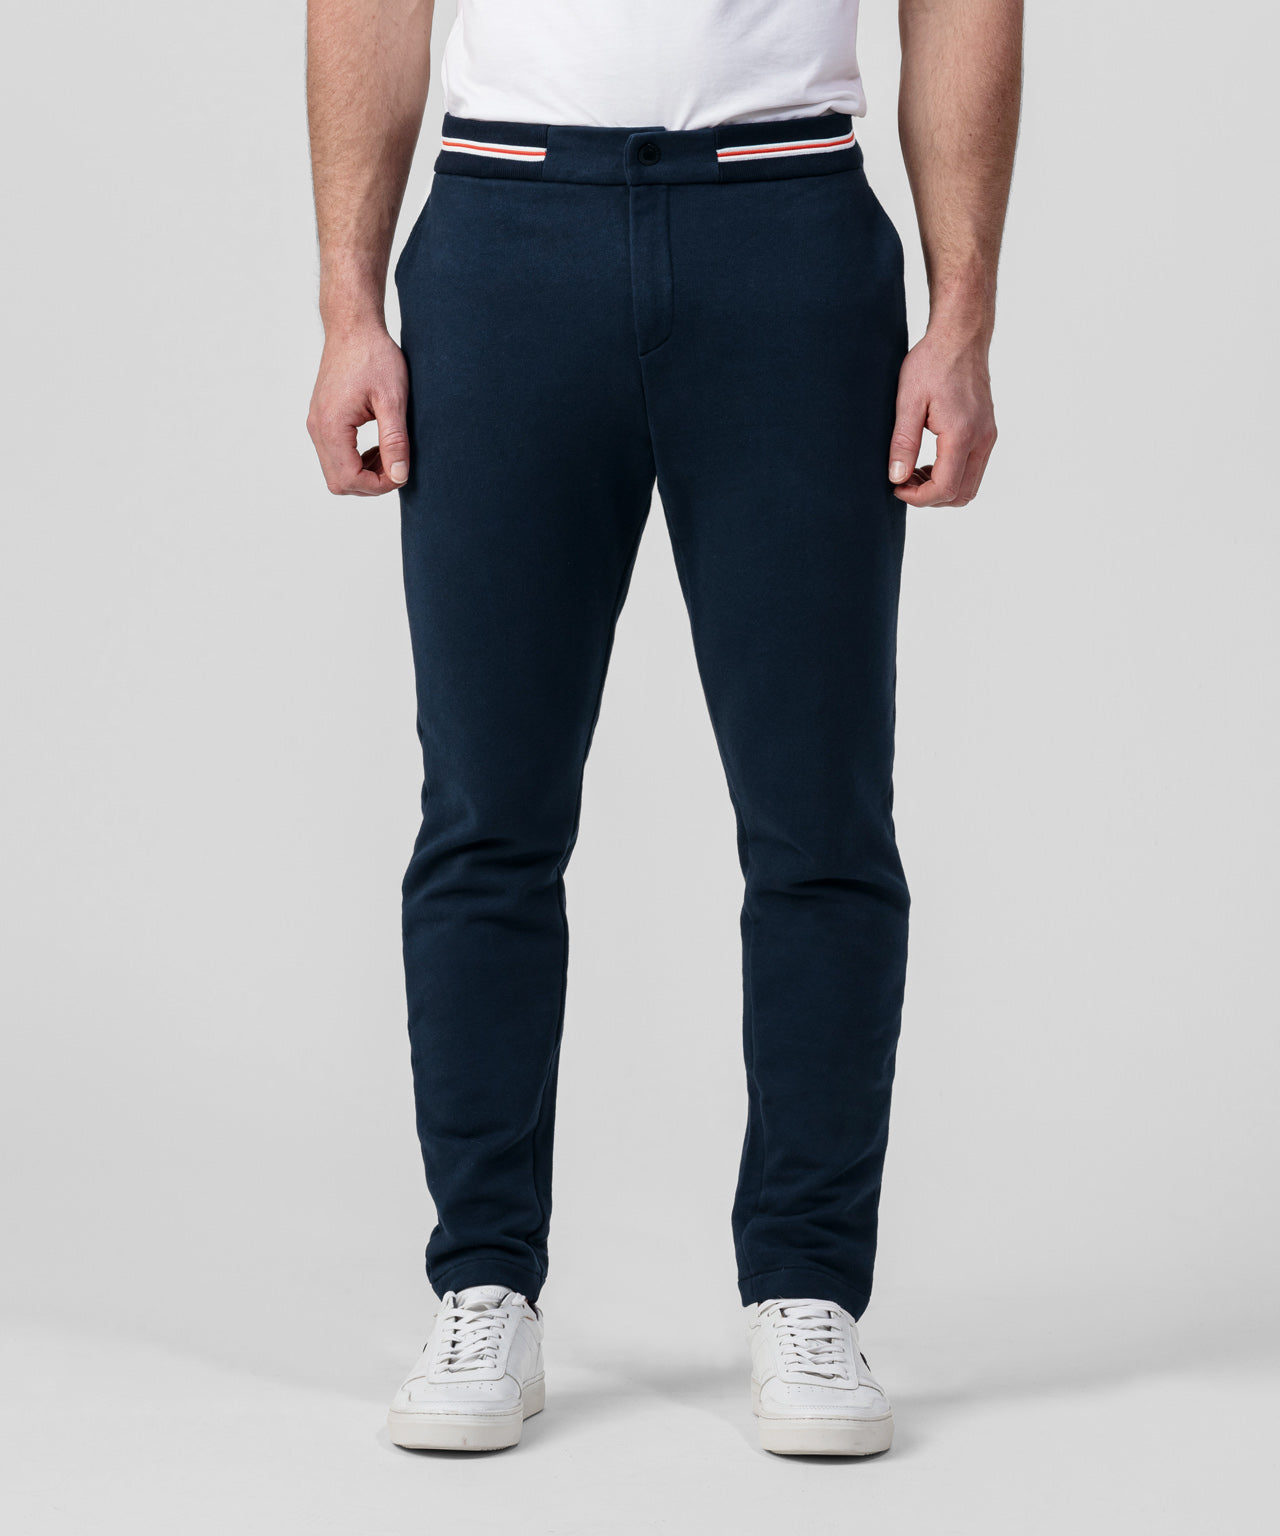 Urban Pants - navy